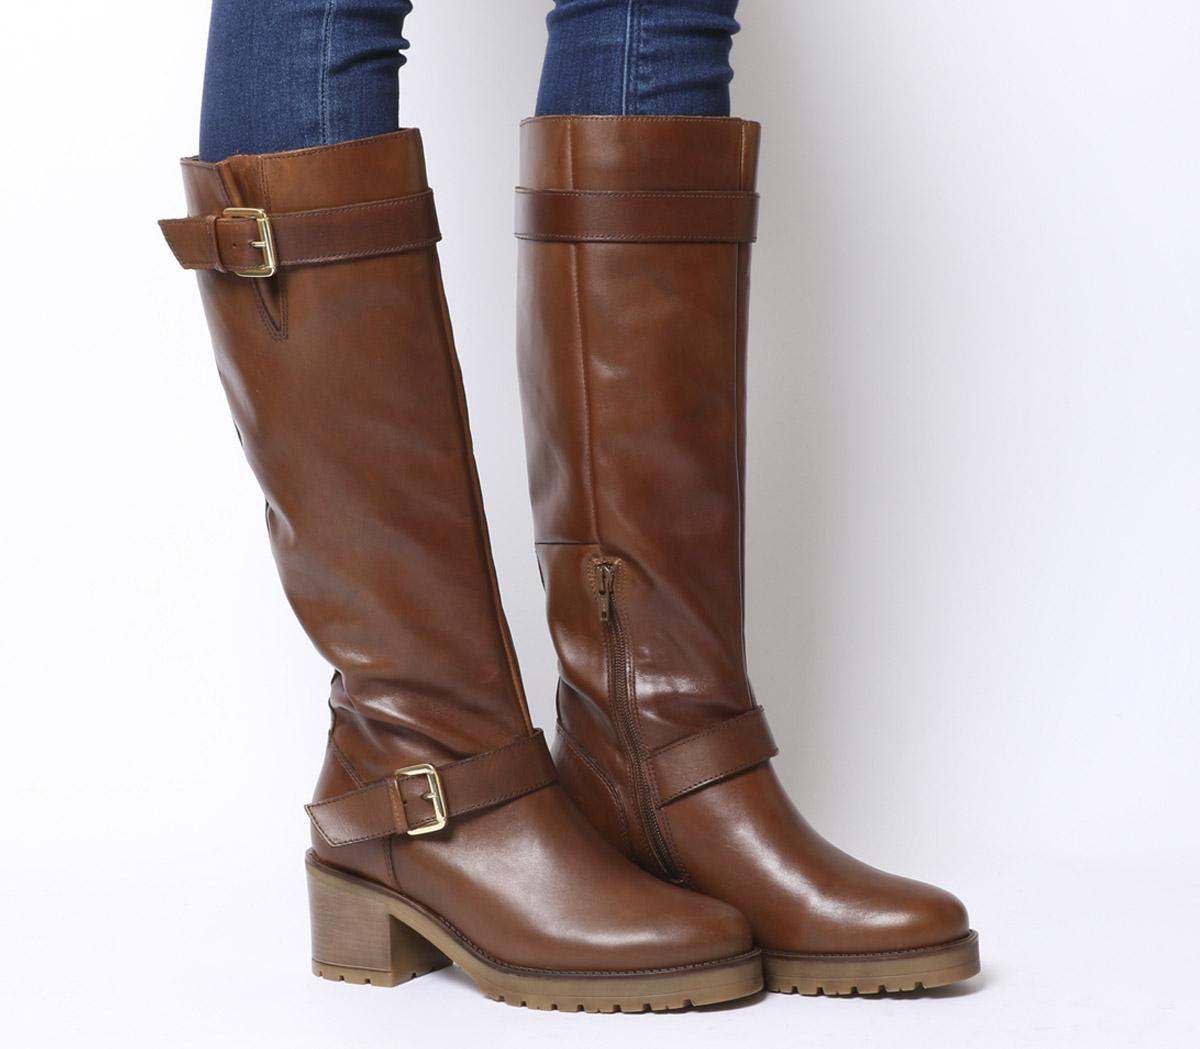 2687a5d88d41 Office Kadi Casual Mid Buckle Knee Boots Tan Leather - Womens Boots